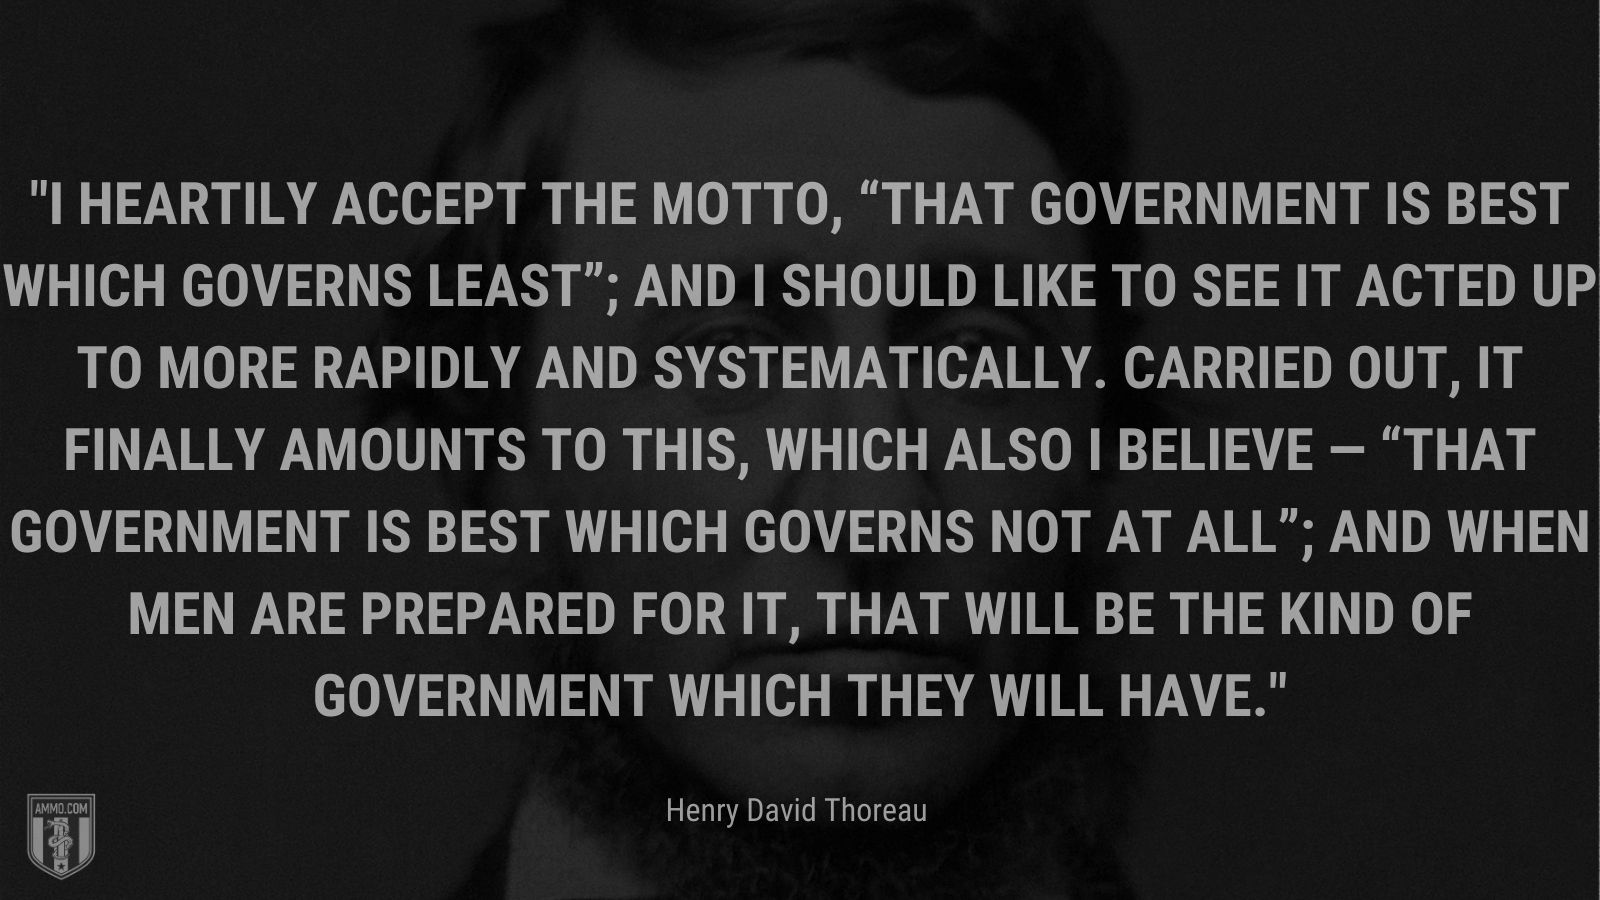 """""""I heartily accept the motto, """"That government is best which governs least""""; and I should like to see it acted up to more rapidly and systematically. Carried out, it finally amounts to this, which also I believe — """"That government is best which governs not at all""""; and when men are prepared for it, that will be the kind of government which they will have. - Henry David Thoreau"""